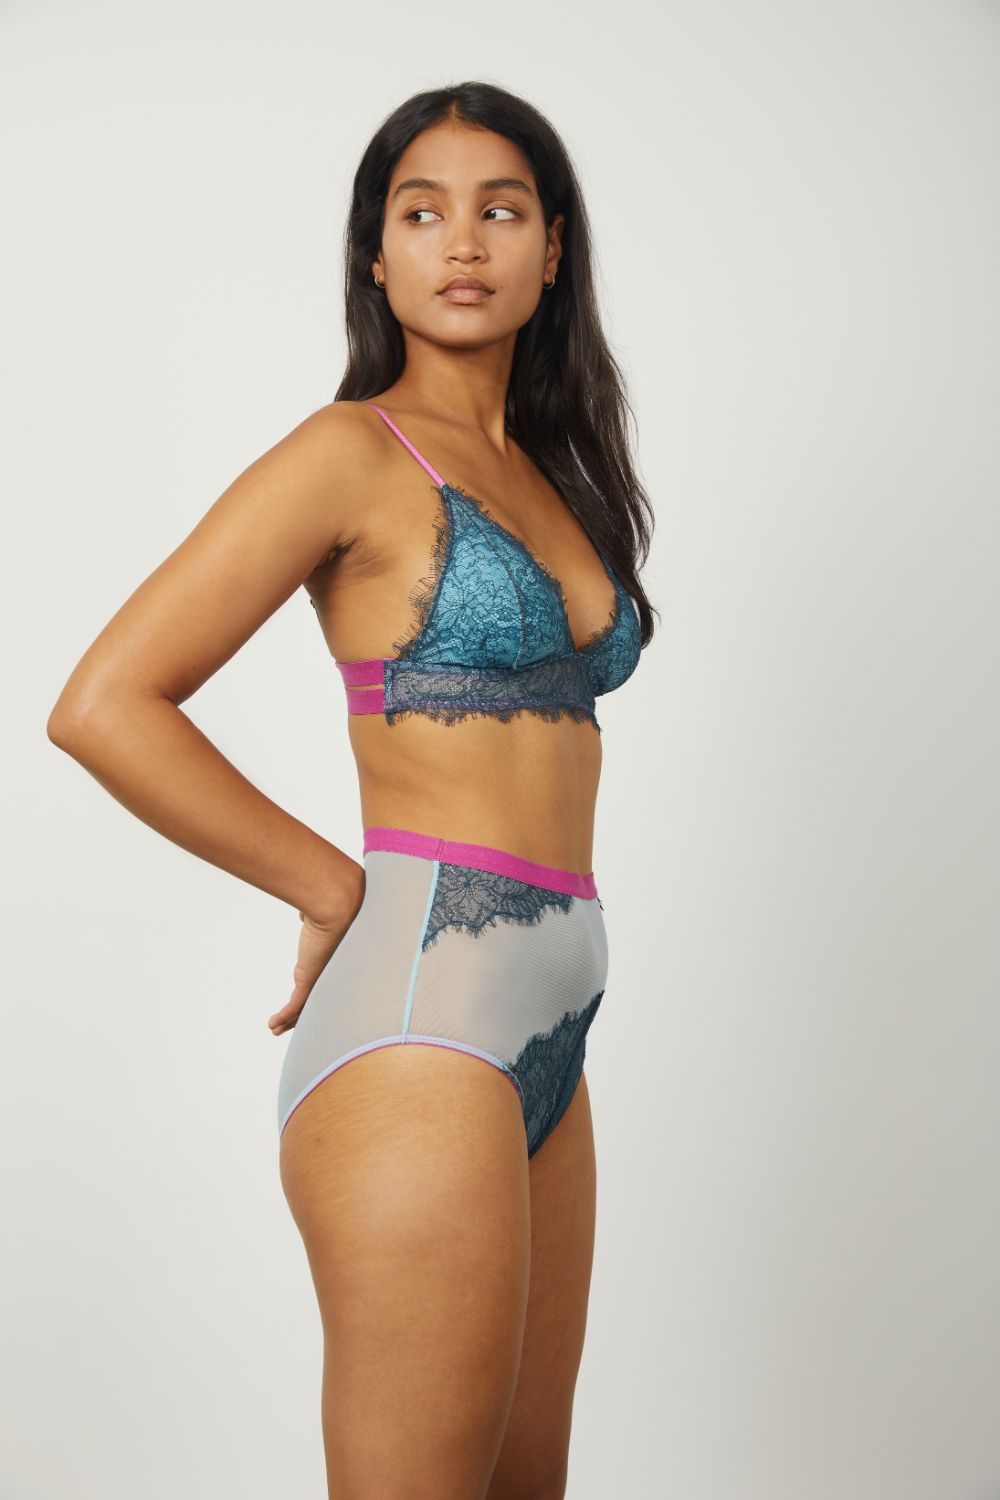 Maria High Waist Knicker - Dora Larsen | Colourful Lingerie